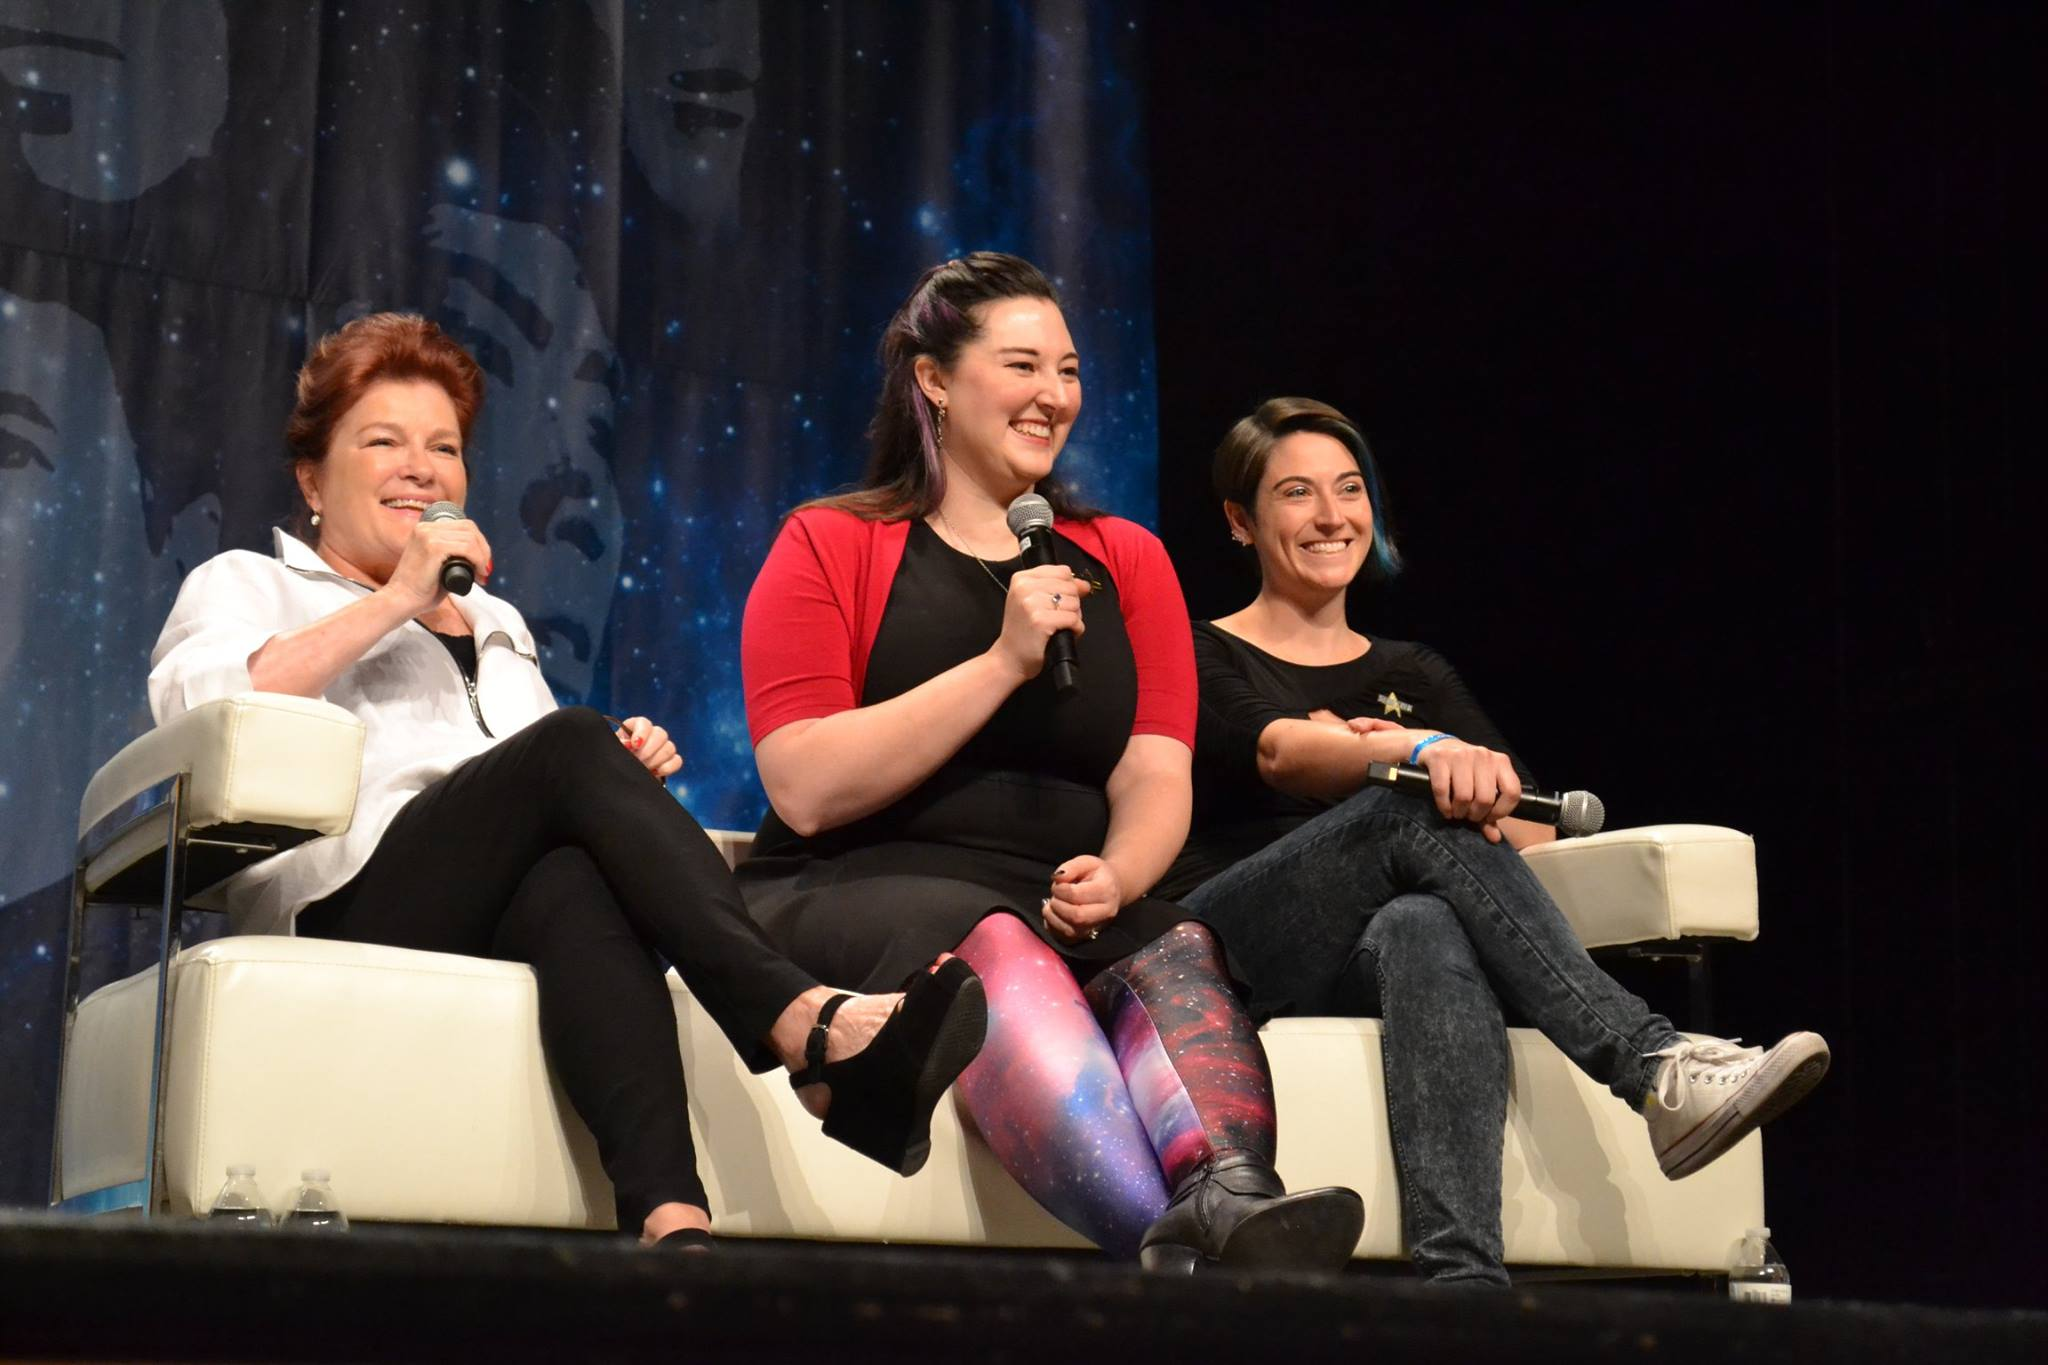 Onstage at Star Trek: Las Vegas in August 2016 with Kate Mulgrew (Left; Star Trek: Voyager and Orange Is the New Black) and Dr. Kayla Iacovino (right; TrekMovie.com)